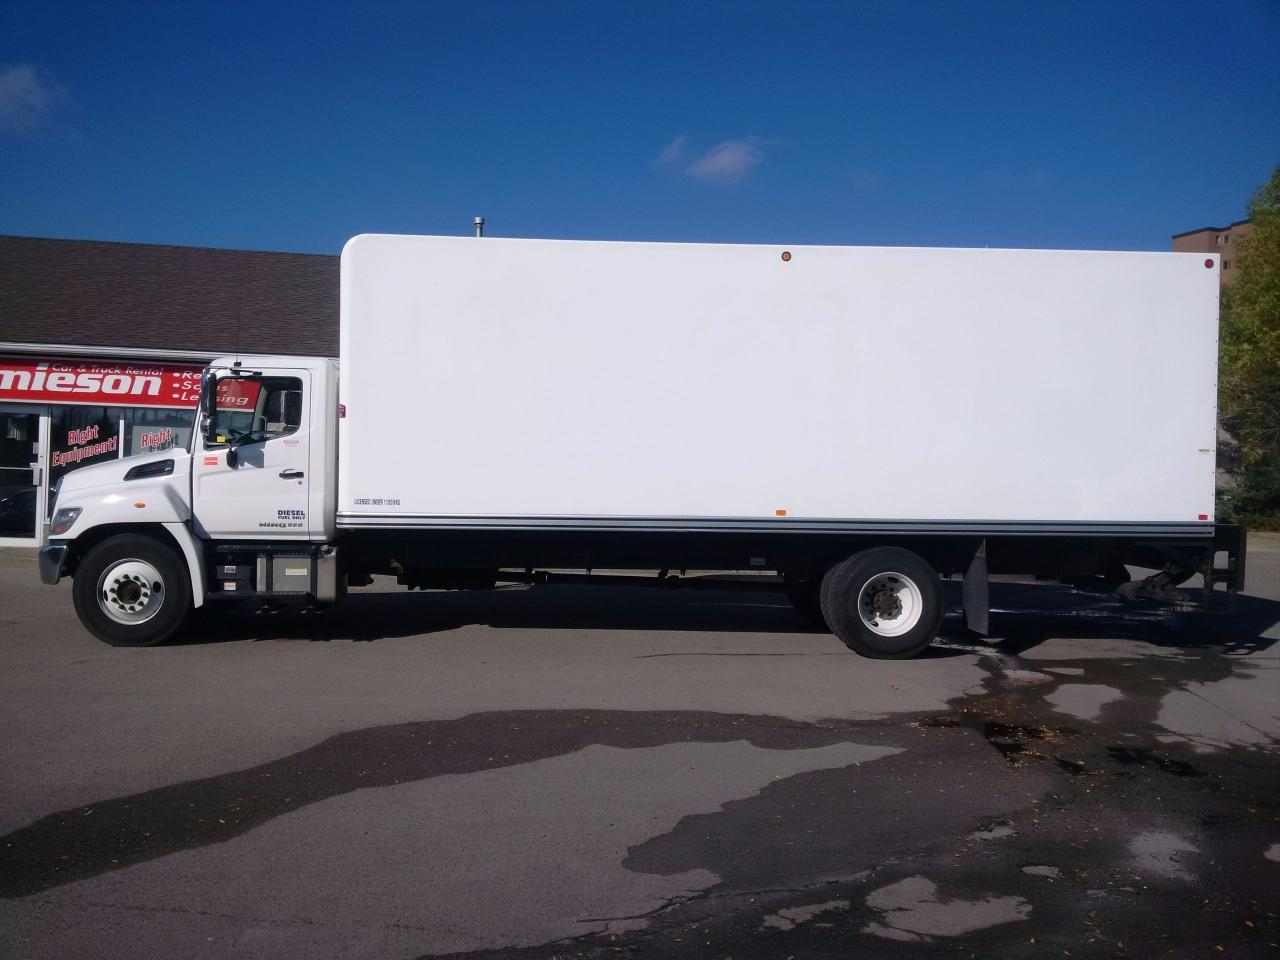 Used 2016 Hino 338 26' with lift and ramp for Sale in Kitchener, Ontario | Carpages.ca